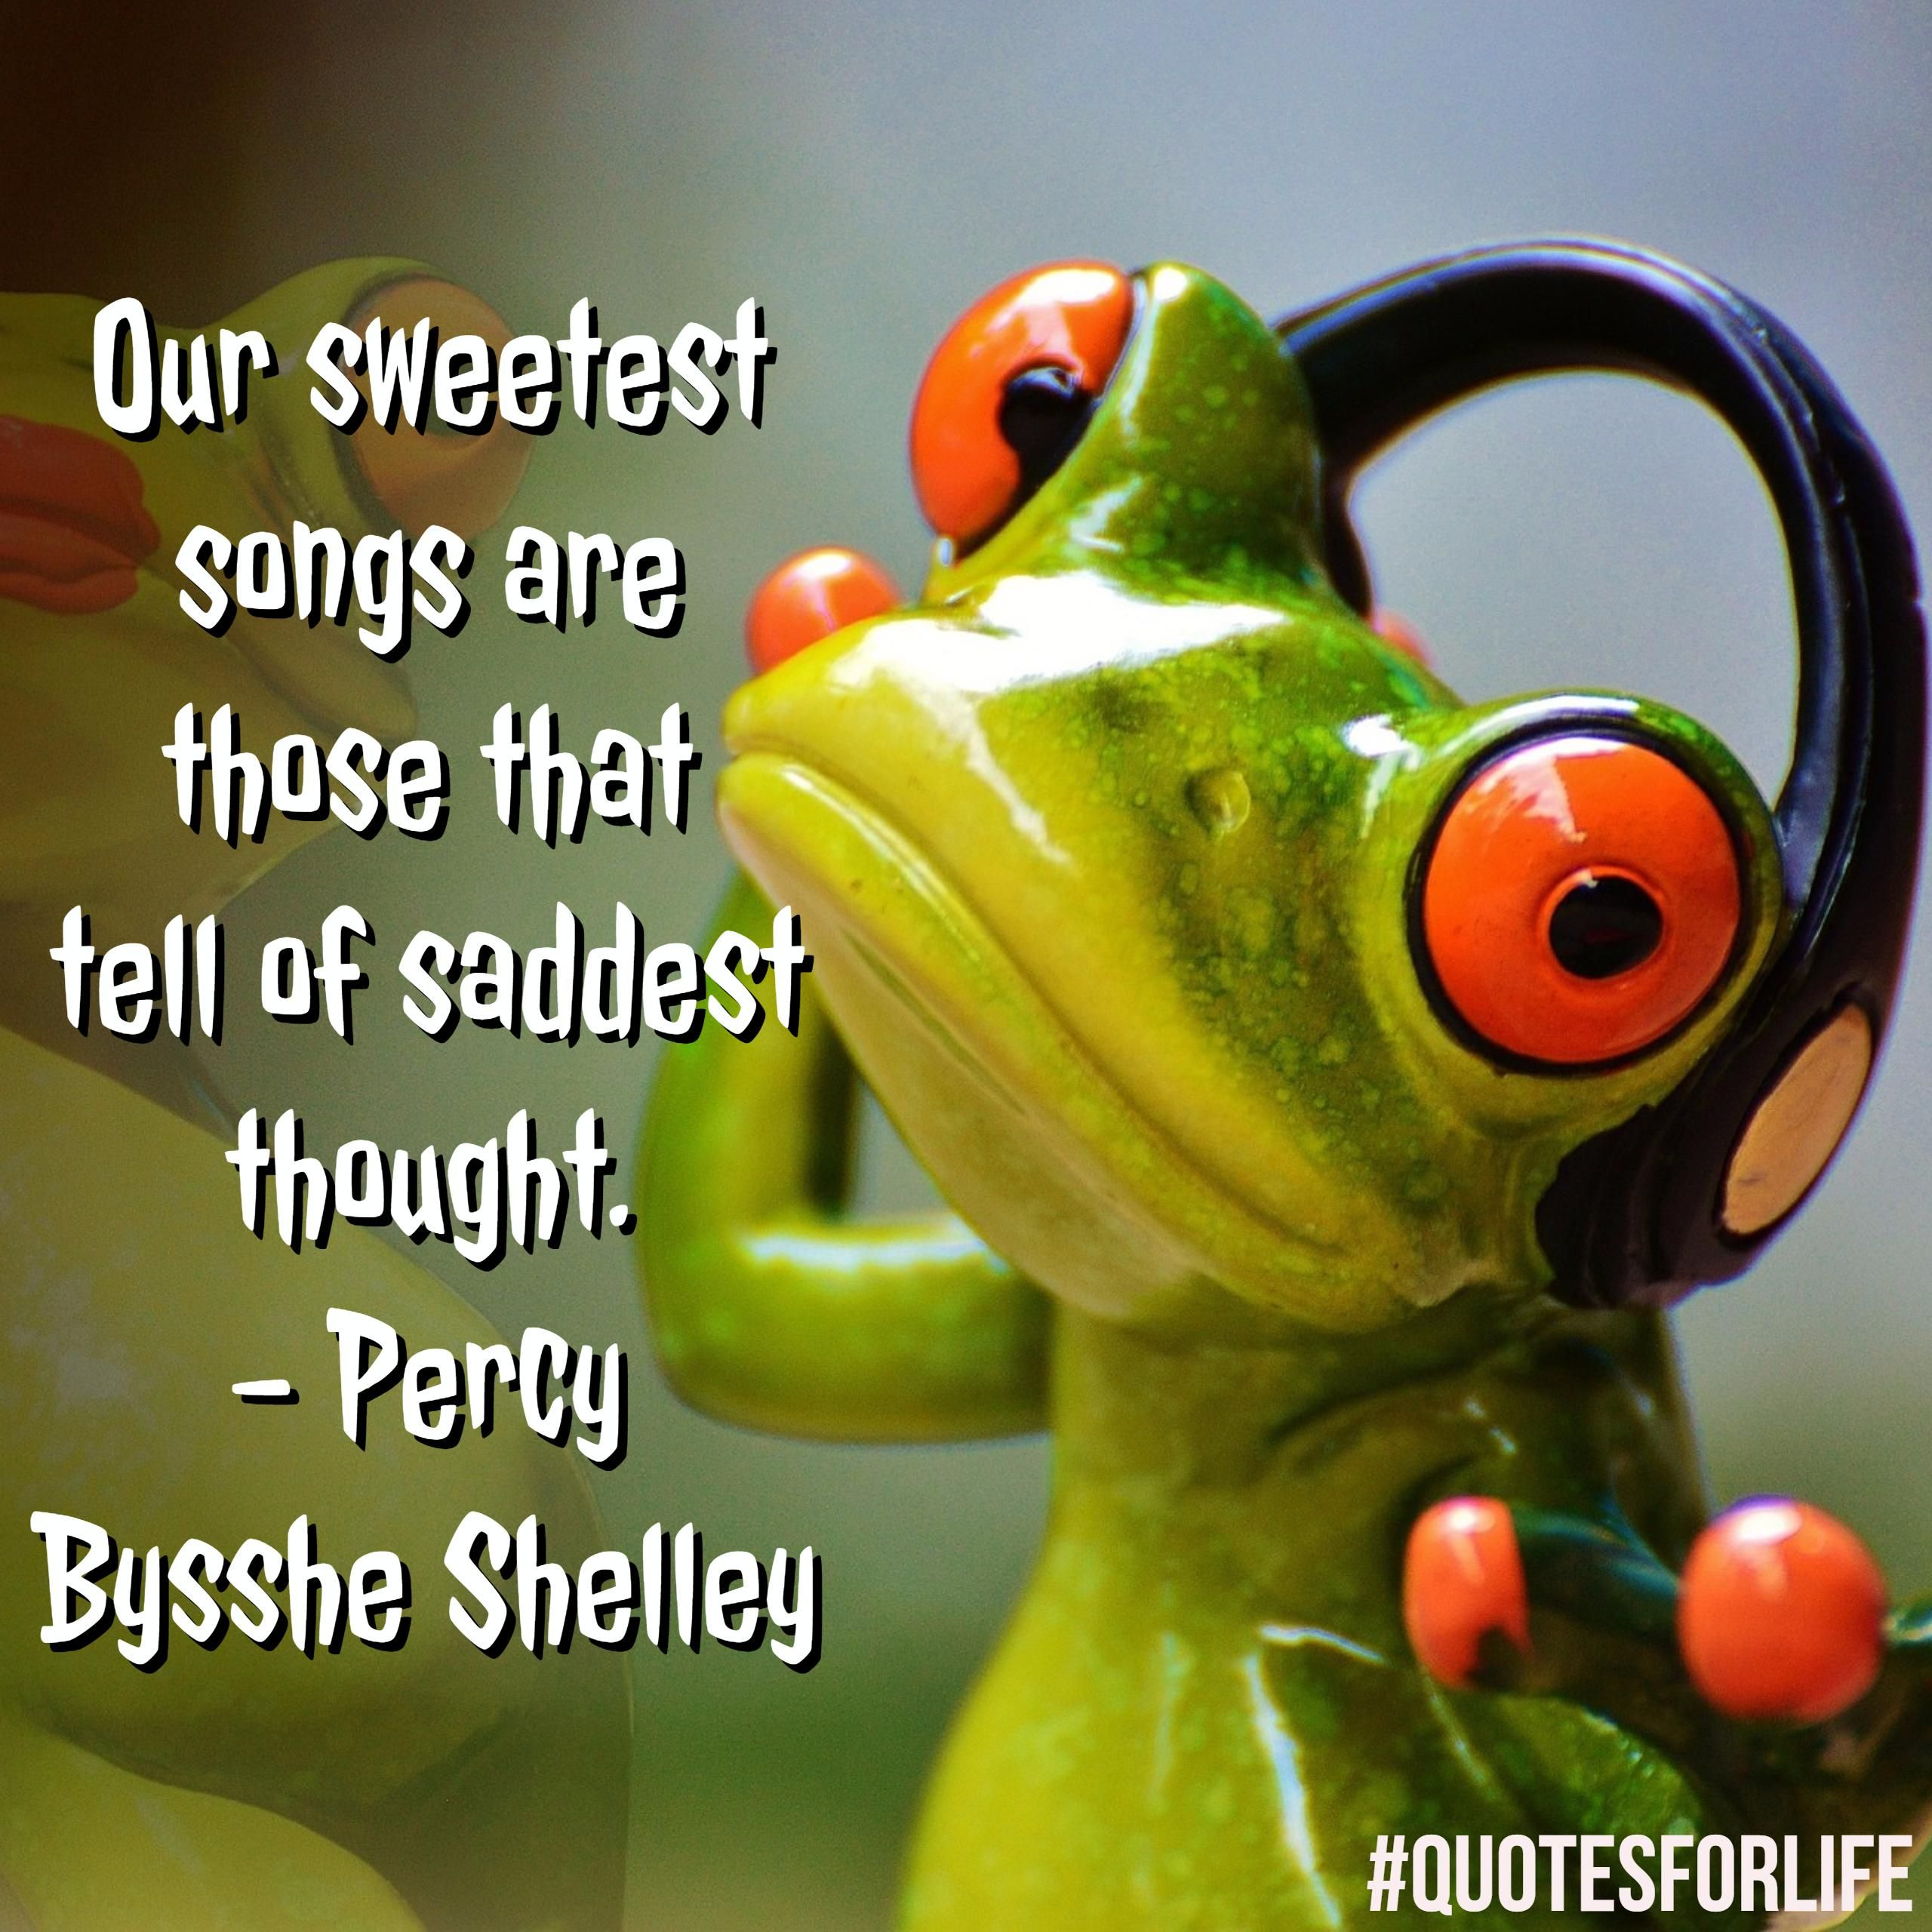 Percy bysshe shelley quotes quotesgram - Quotes For Life Our Sweetest Songs Are Those That Tell Of Saddest Thought